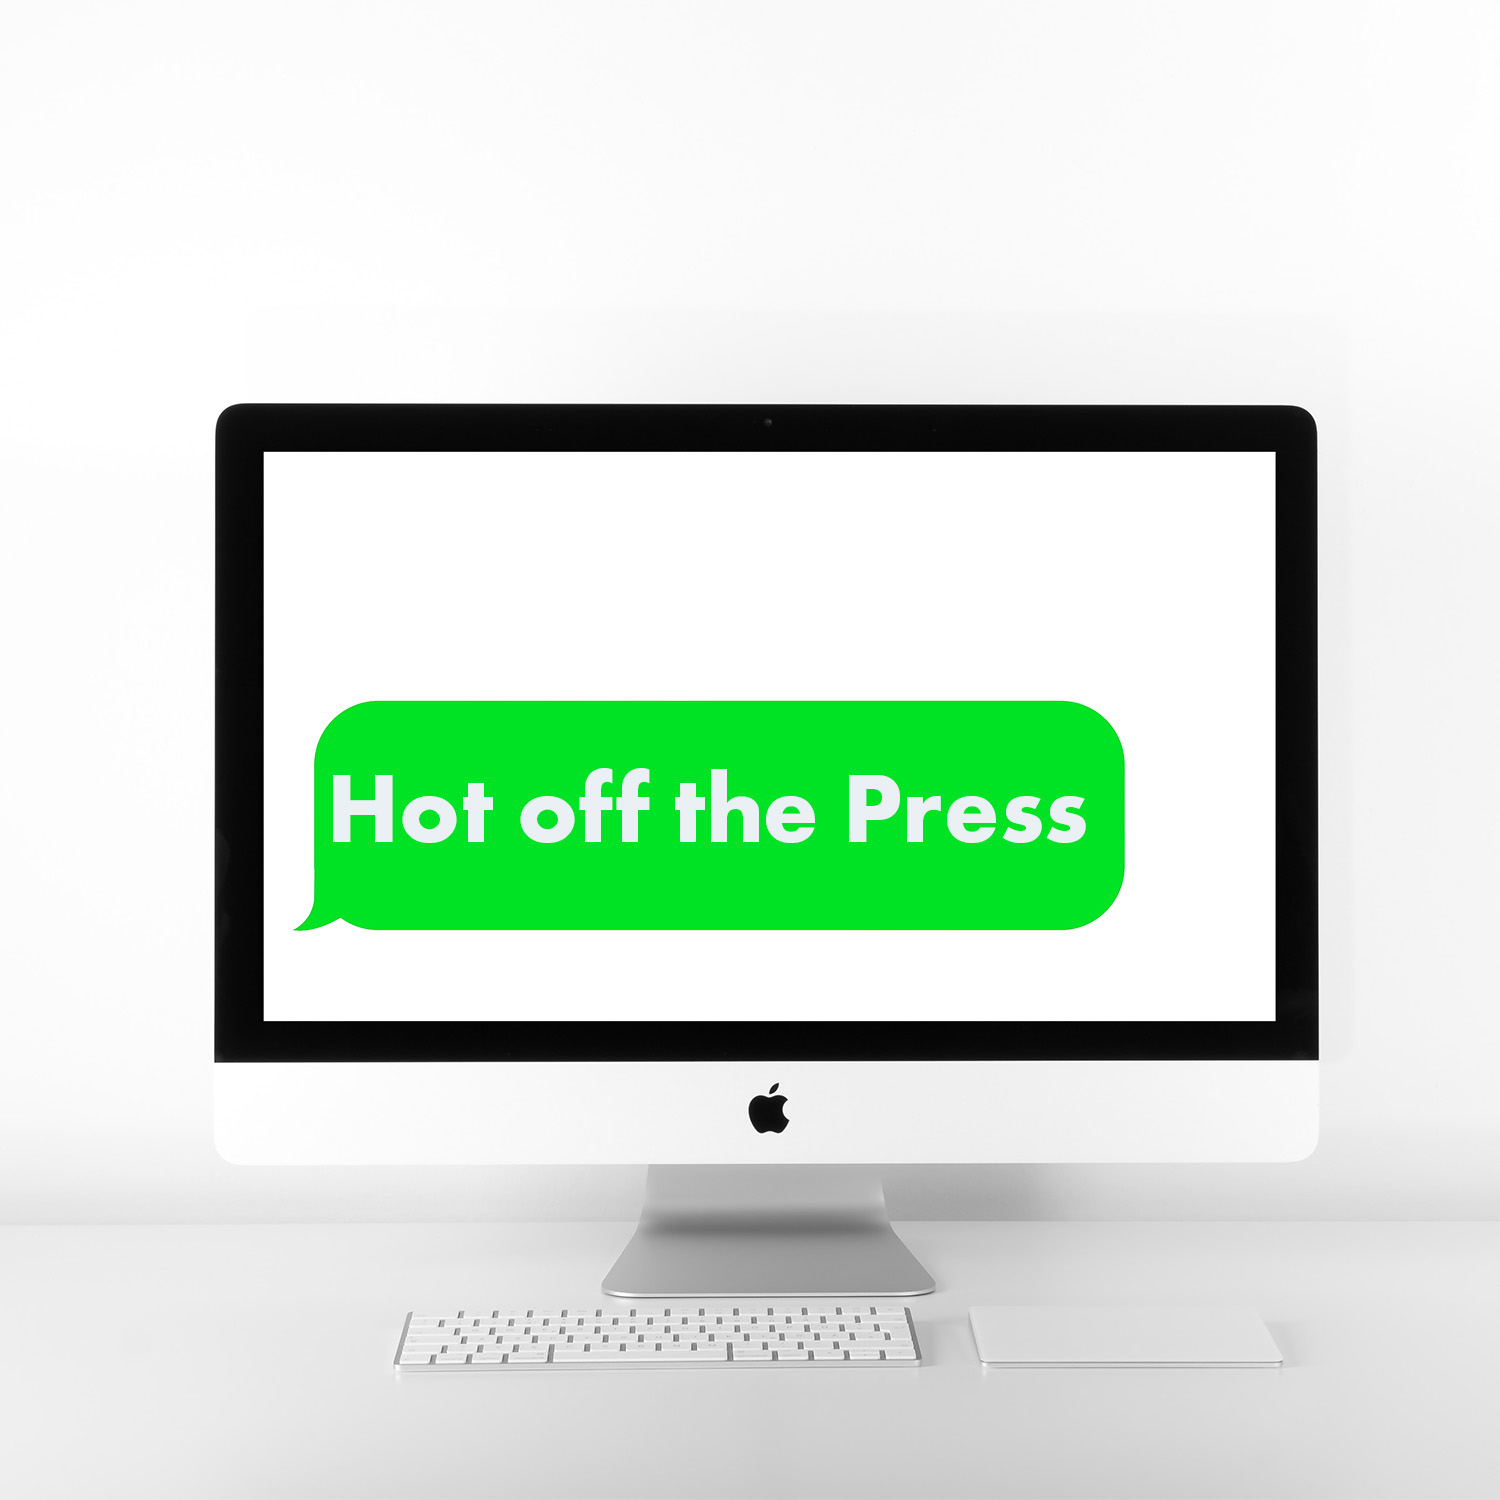 HOT OFF THE PRESS - Catch up on Hotglue news, as well as reading our blog entries about media.